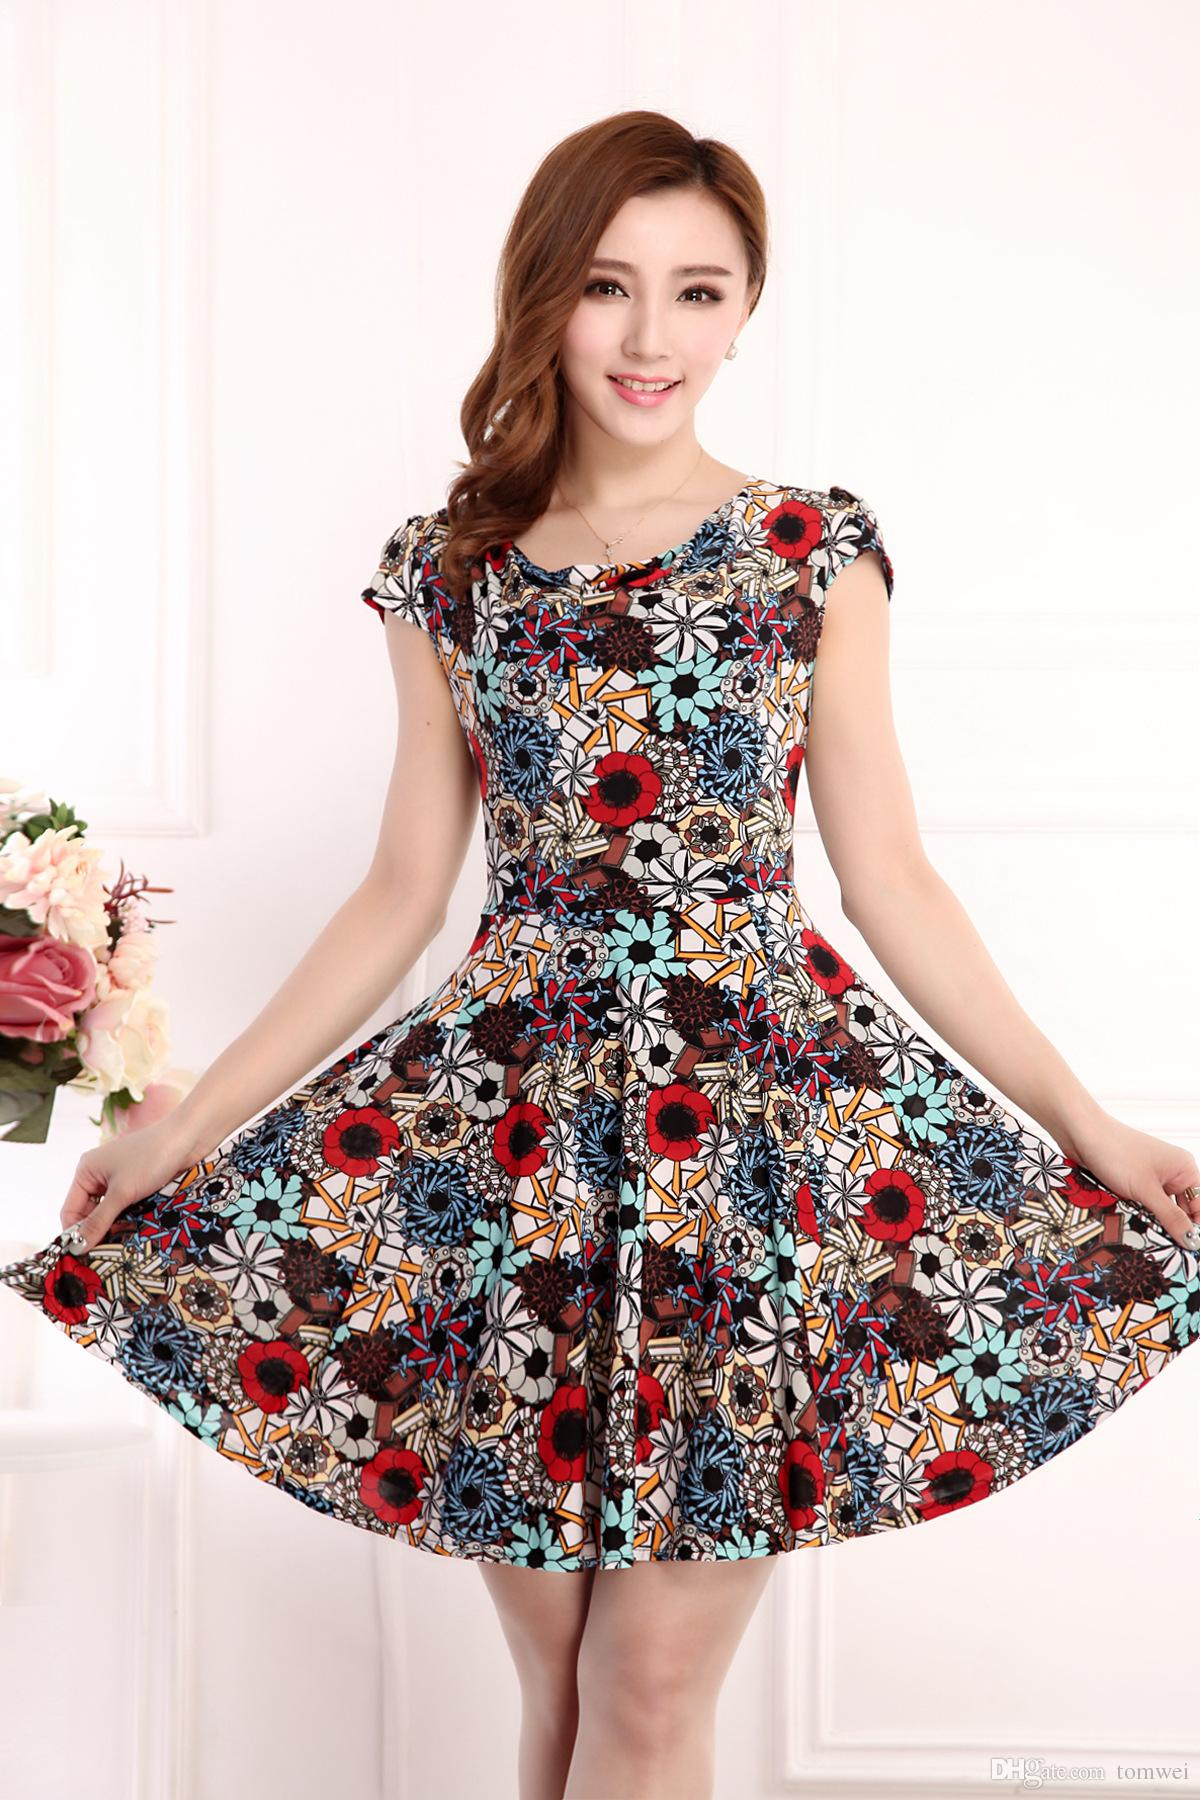 Find women's dresses online, you can buy cheap fashion dresses from a huge selection on megasmm.gq with worldwide shipping.